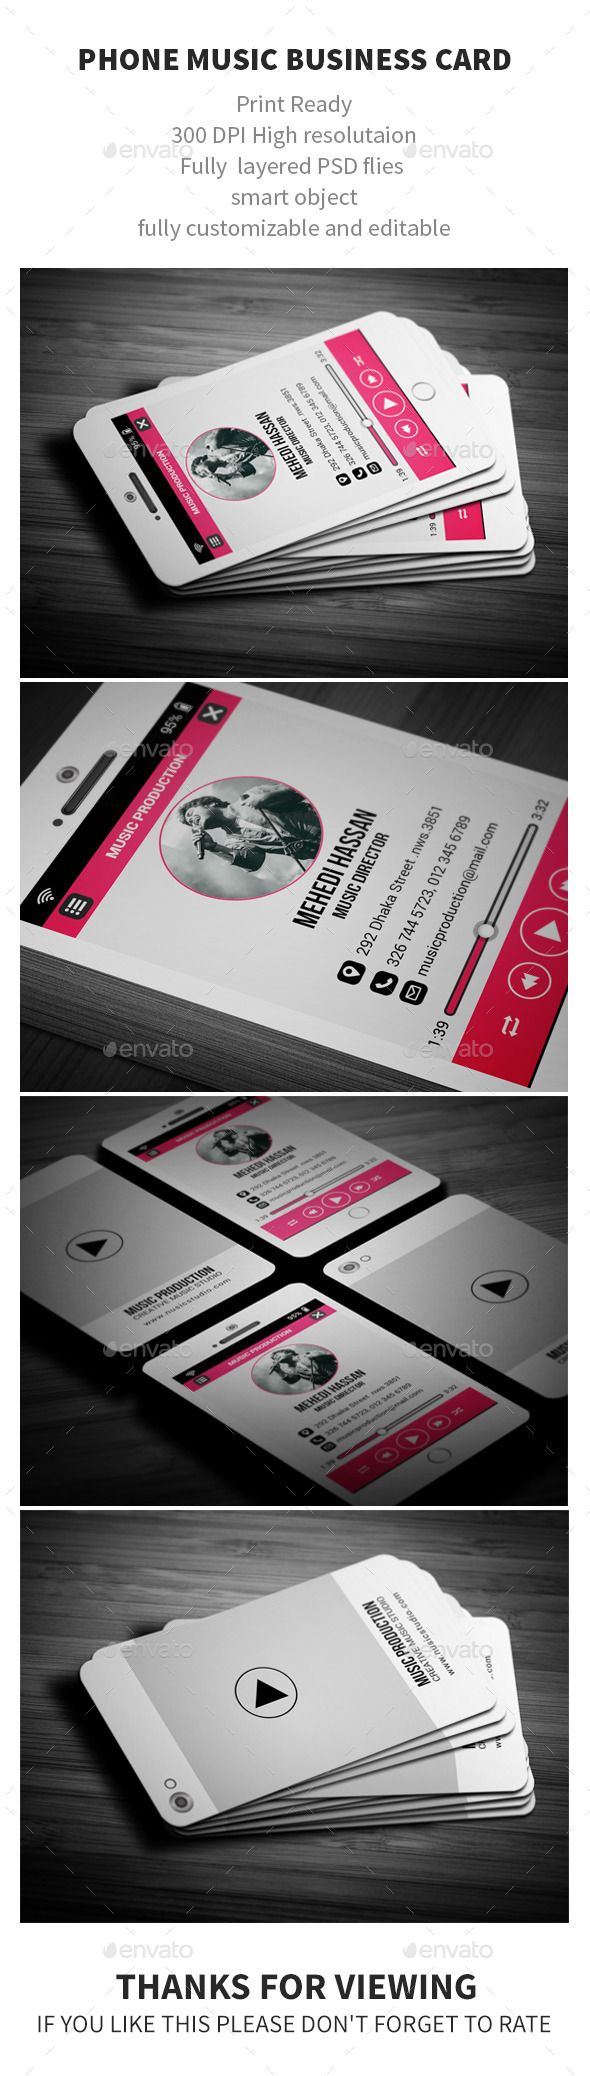 Phone Music Business Card - Business Cards Print Templates Download here : http://graphicriver.net/item/phone-music-business-card/12245401?s_rank=1705&ref=Al-fatih